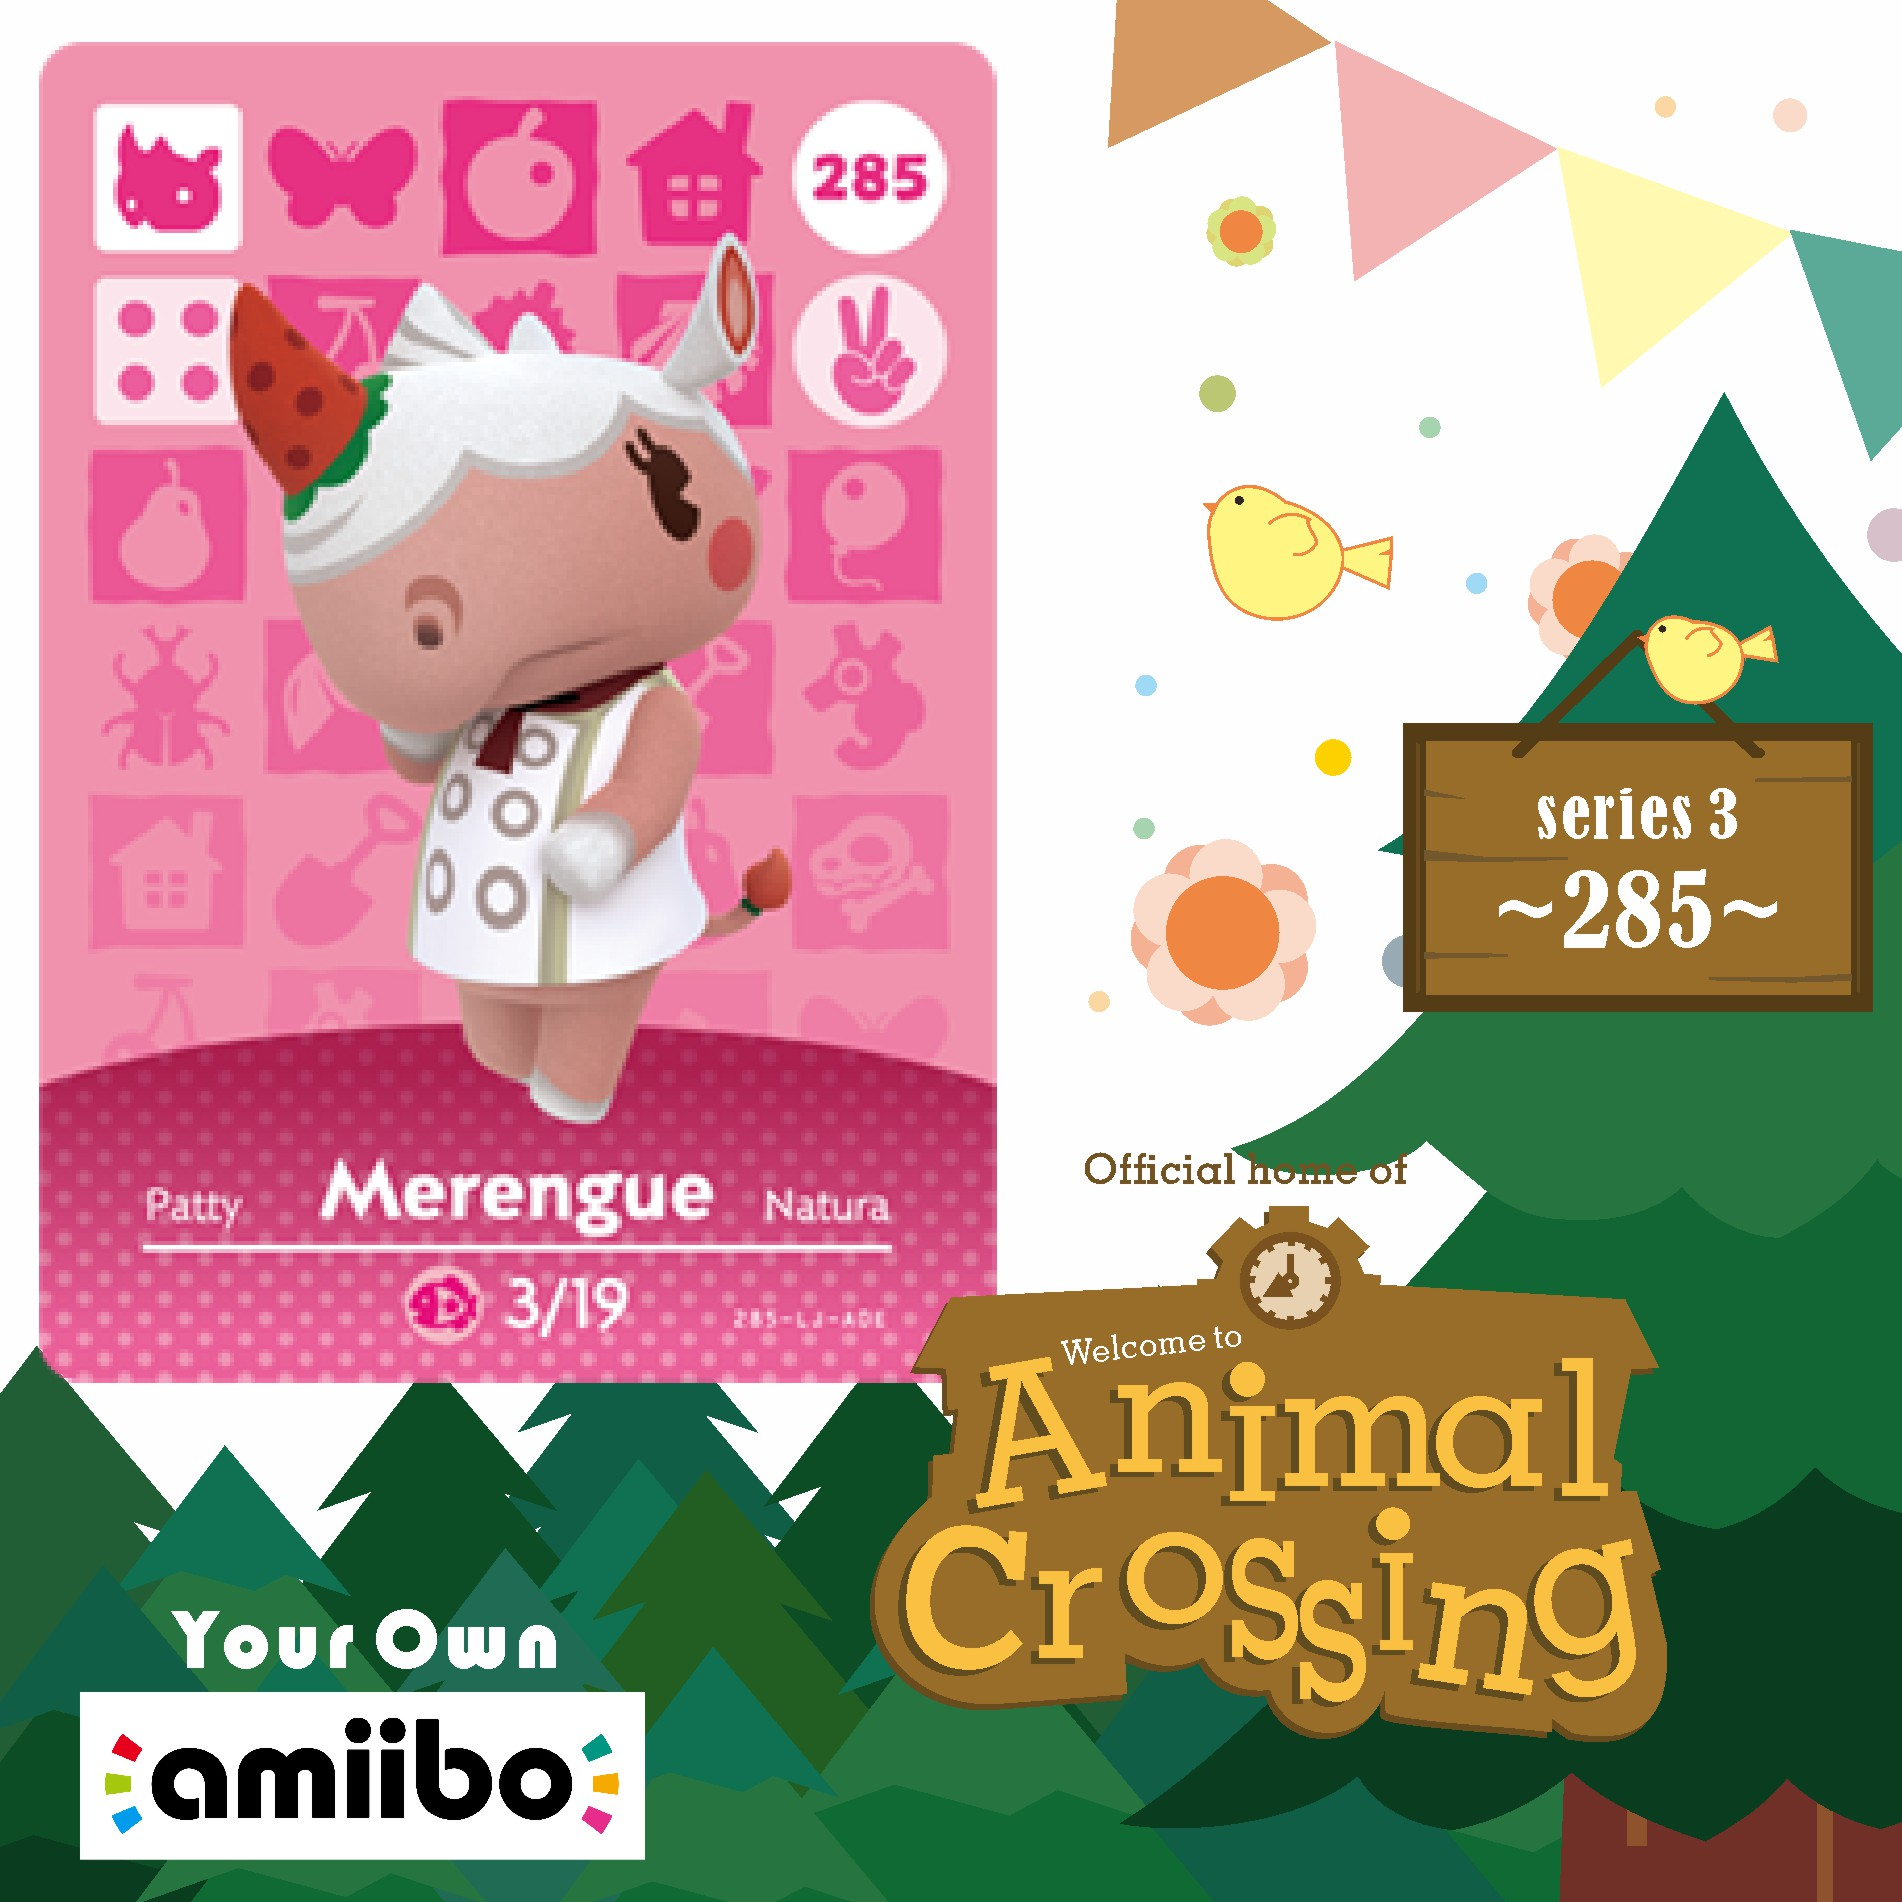 285 Animal Crossing Merengue Amiibo Merengue Animal Crossing Amiibo Merengue Animal Crossing Merengue Amiibo Merengue Cards 285